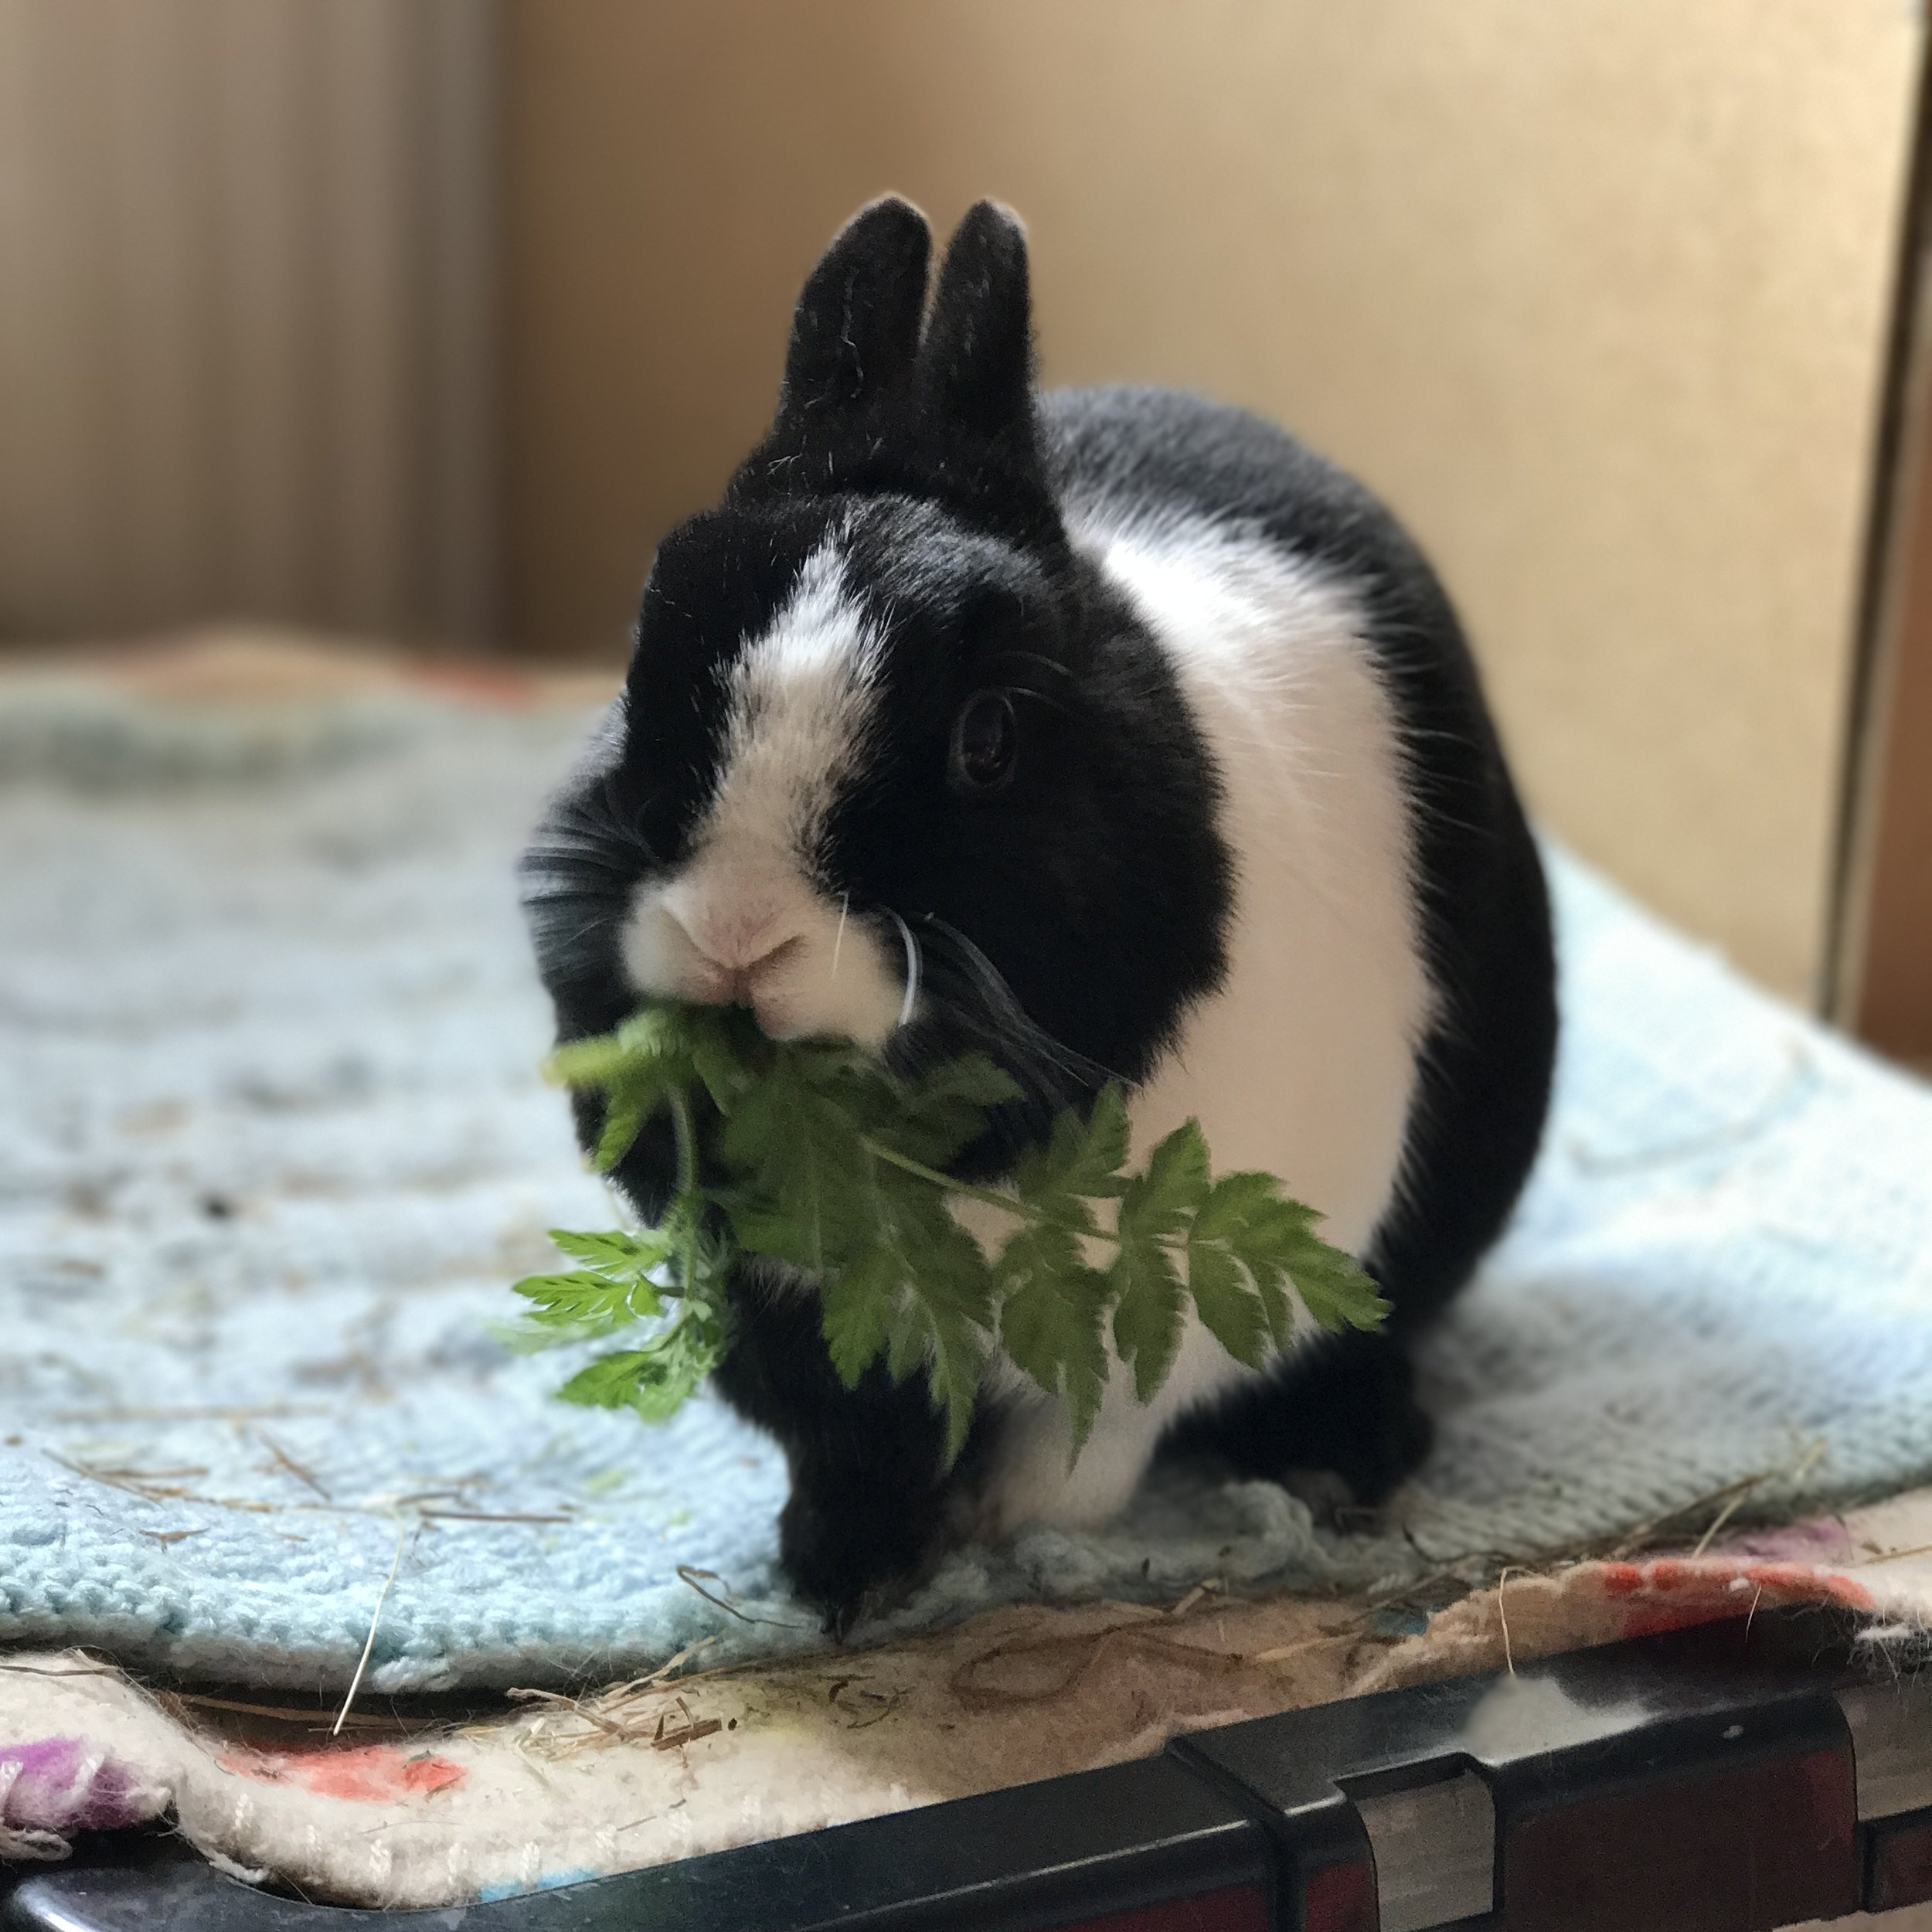 Little Nutty, one of Lauren's own rabbits, tucking in to a healthy snack of cow parsley (foraged from her woods).